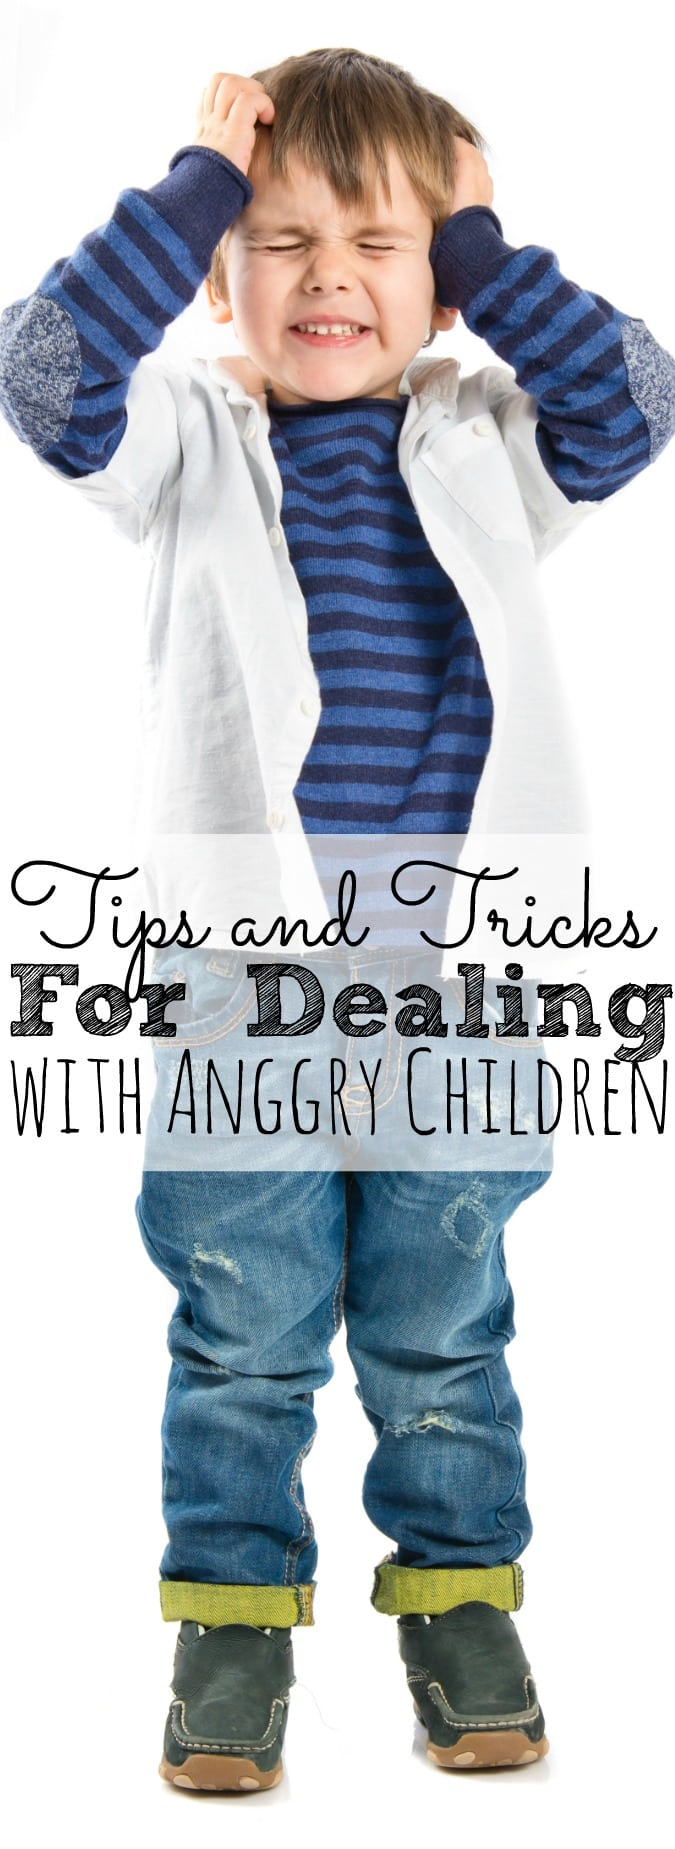 Tips For Dealing with Angry Children